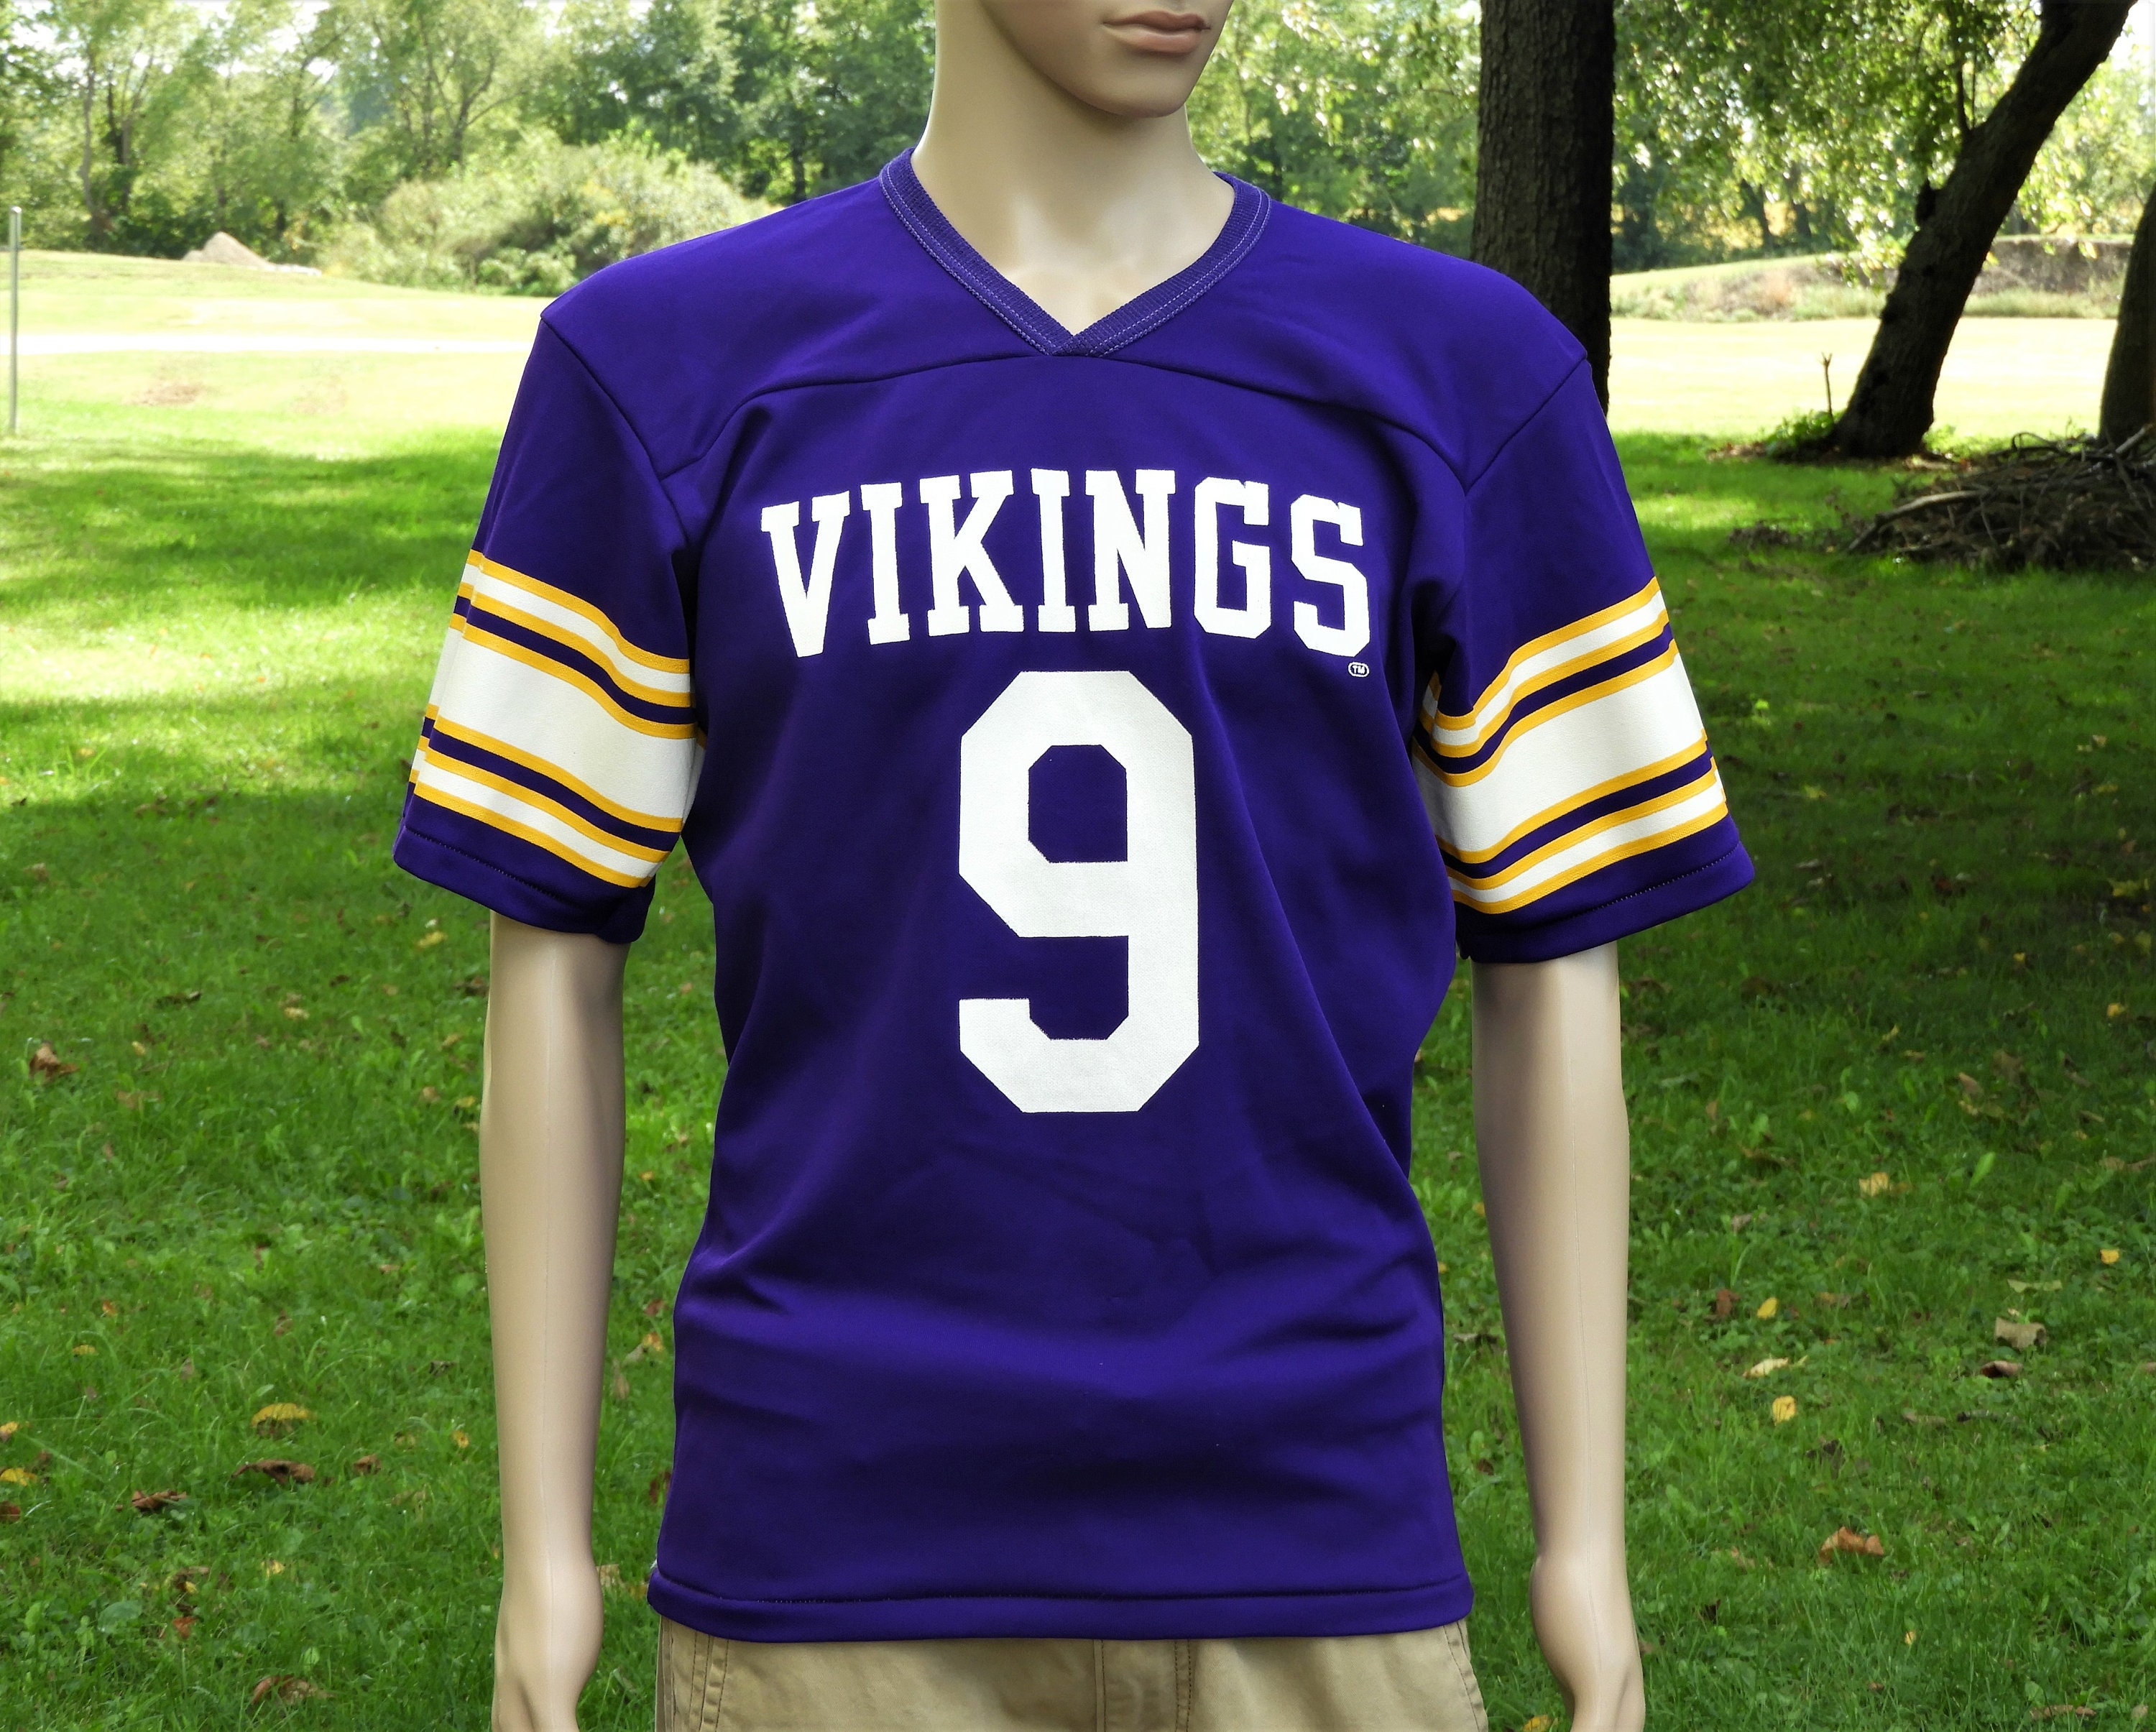 801eeff8ed0 Vintage Vikings Jersey, Purple Rawlings Shirt, Adult Sports Apparel,  Football Souvenir, NFL Officially Licensed Product, Retro Fashion